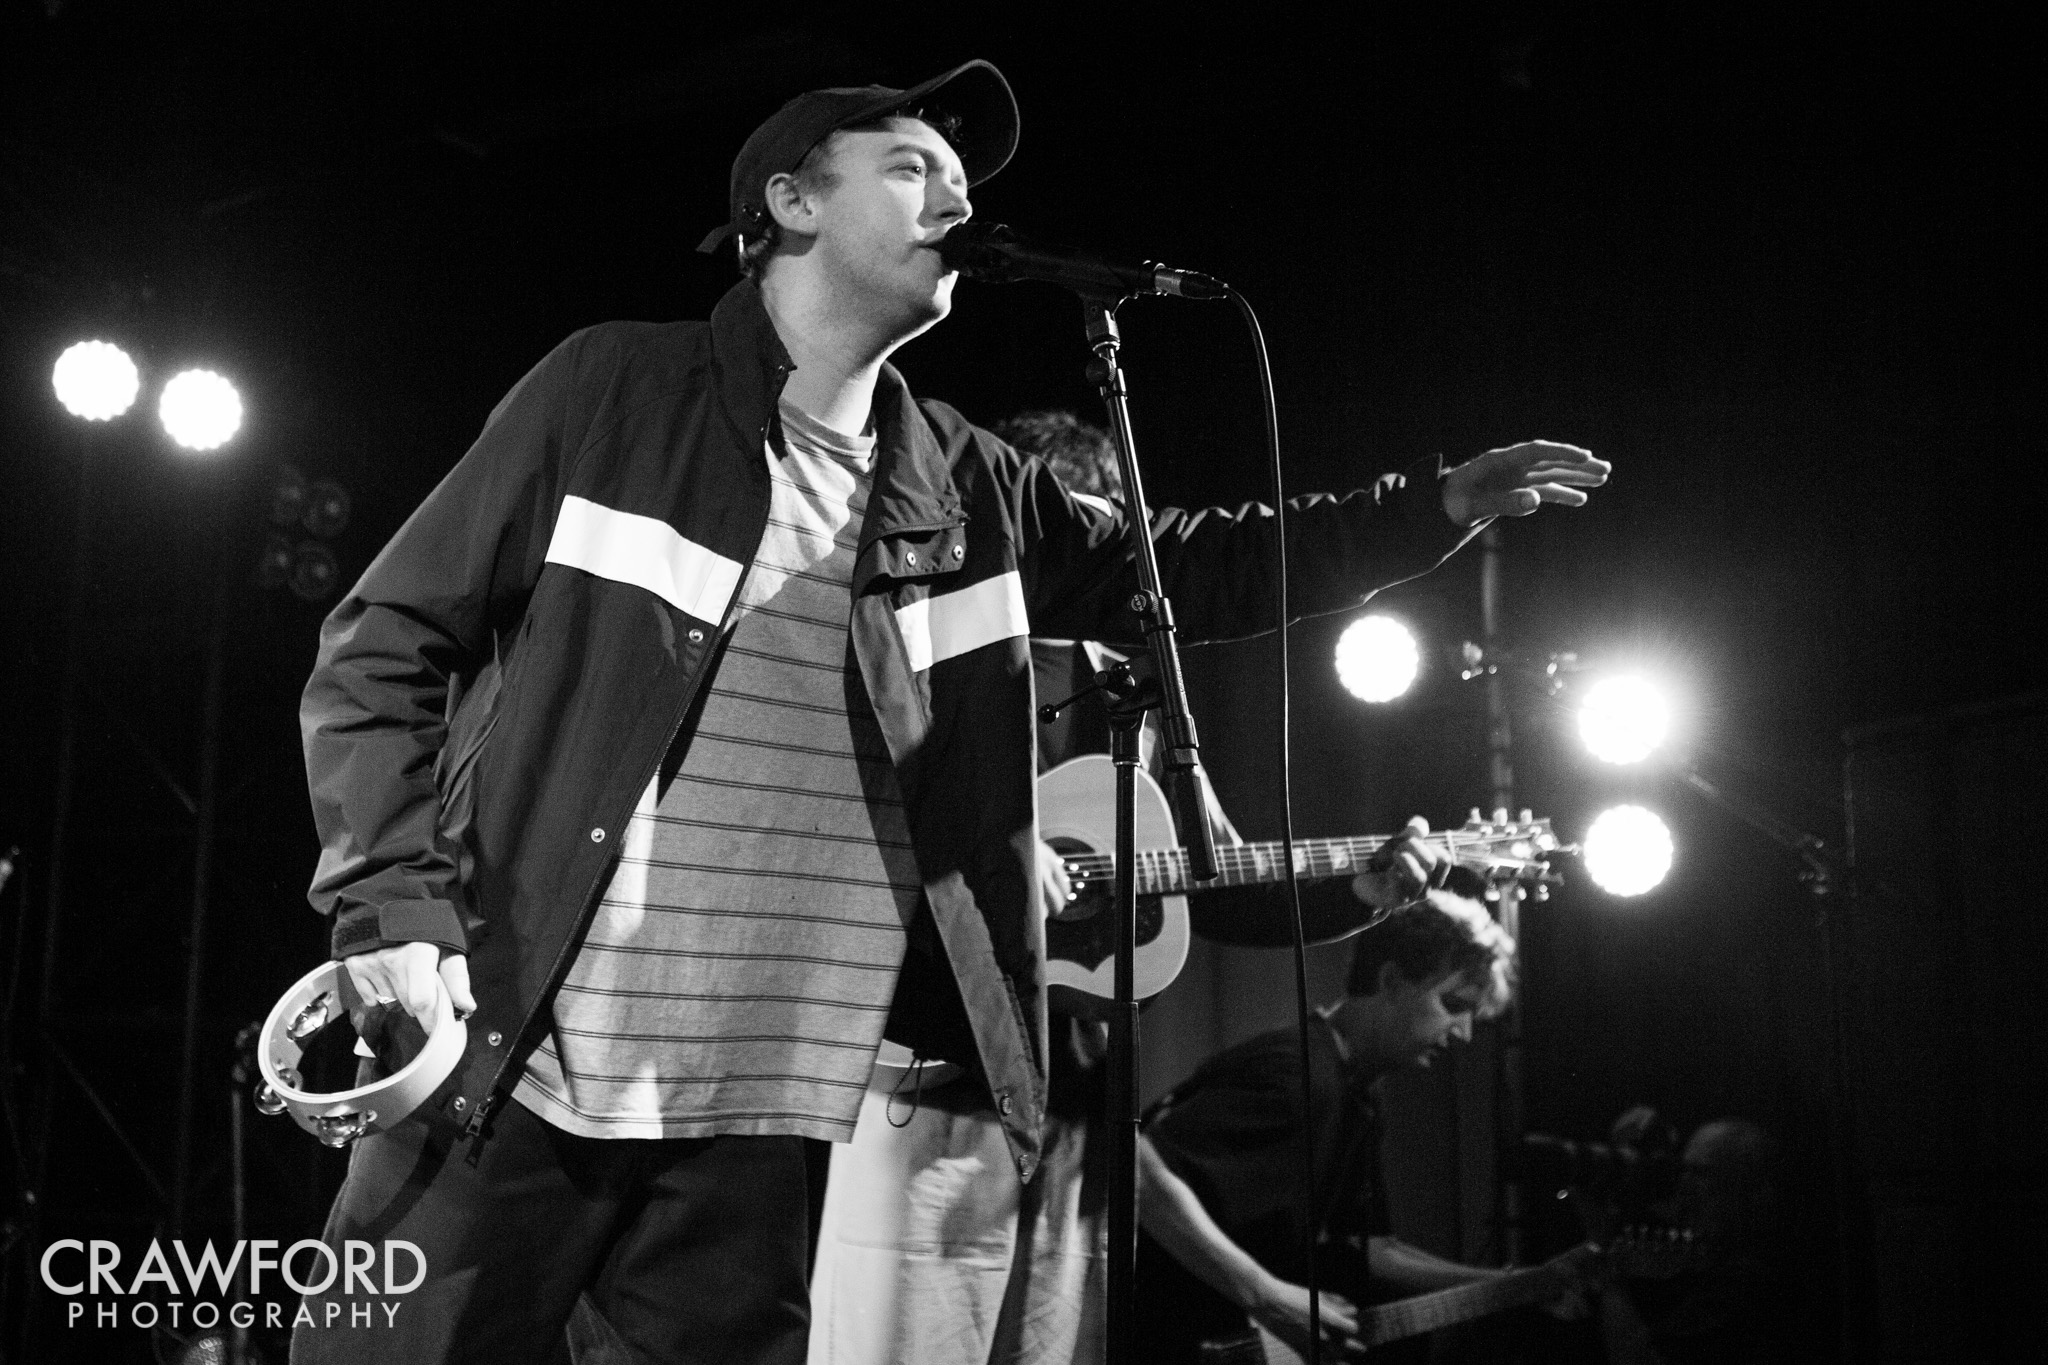 Concert Review - DMA's, Auckland New Zealand, 2017